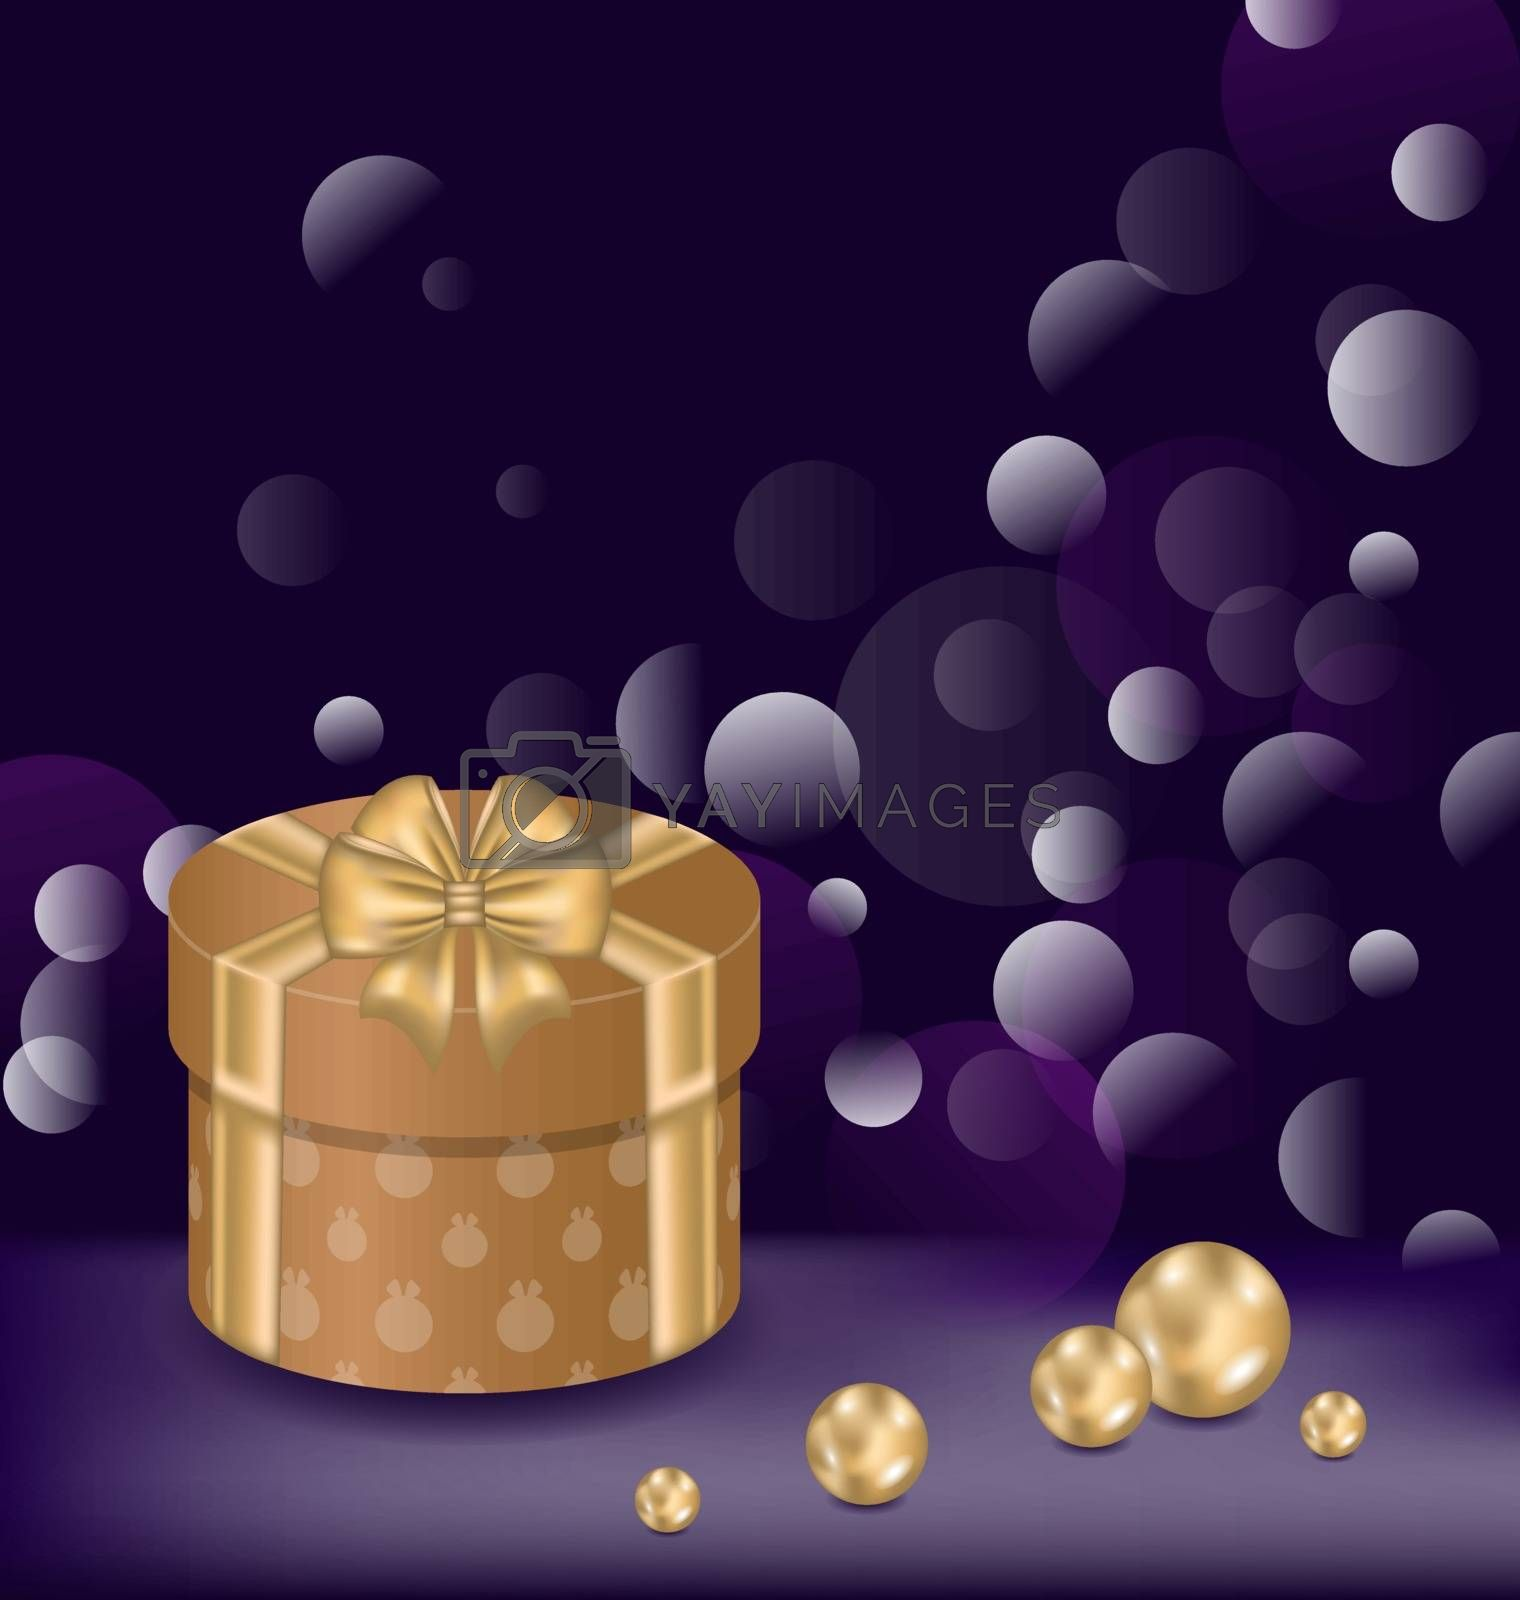 Illustration Christmas background with gift box and pearls - vector